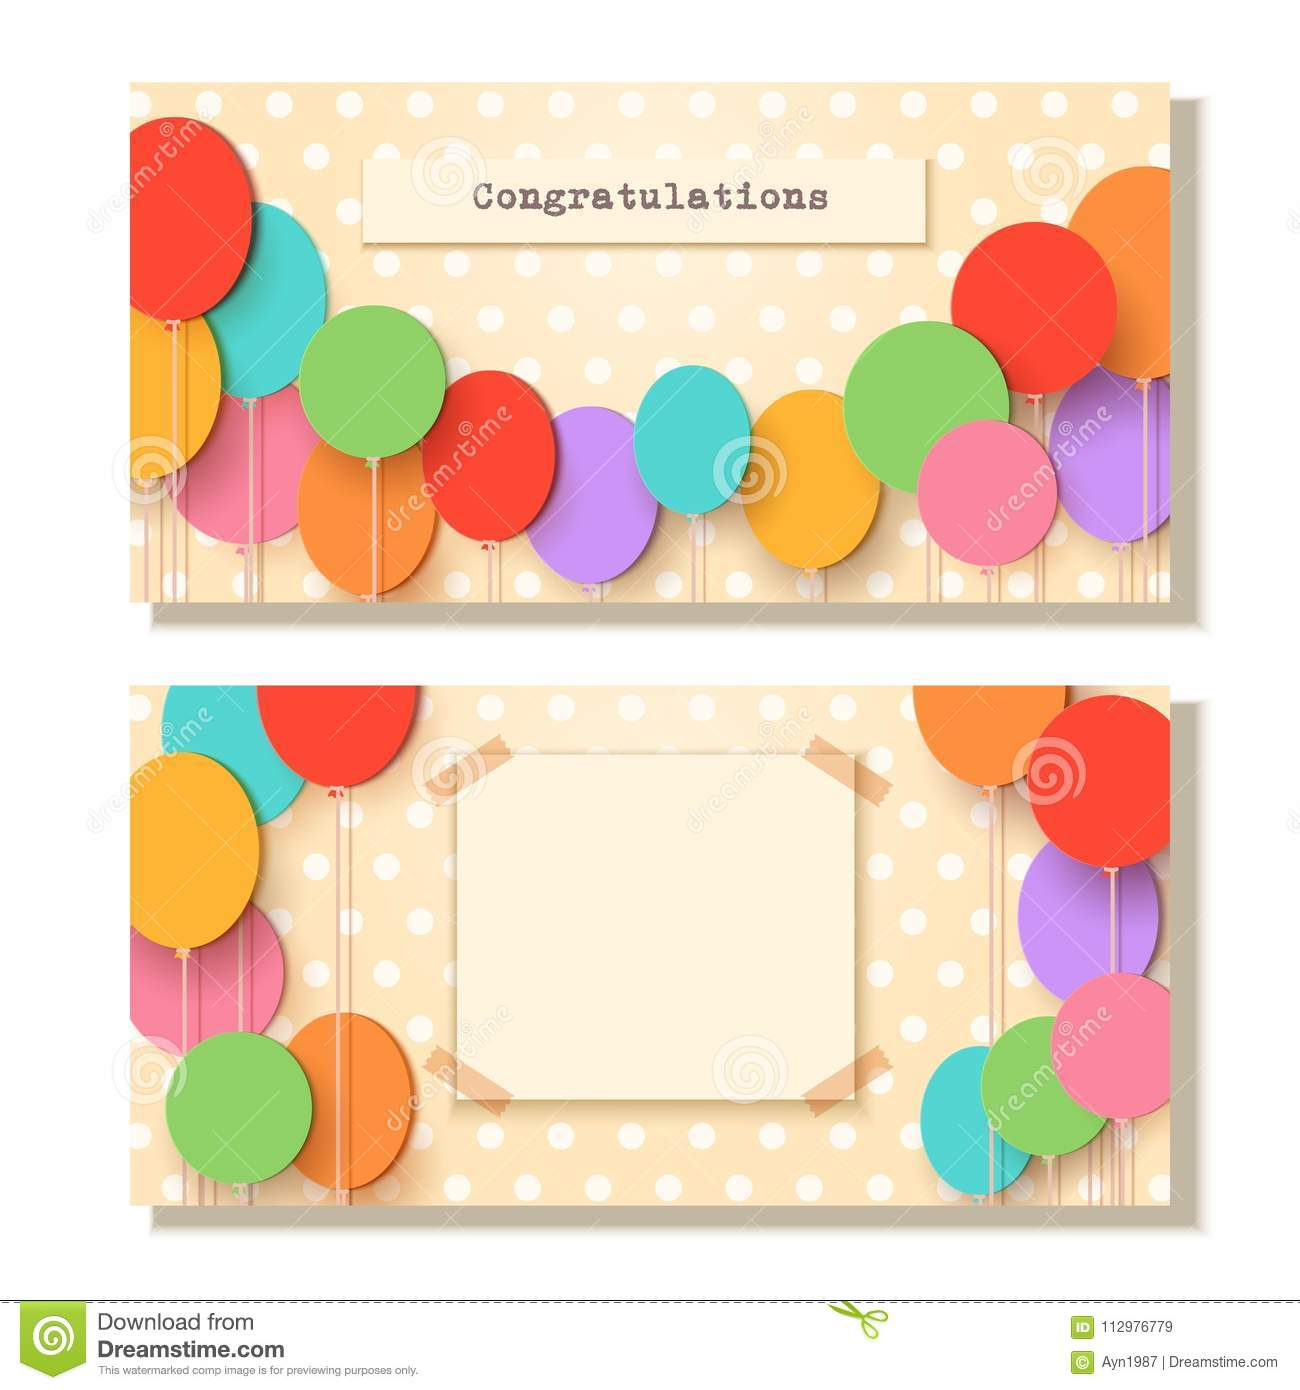 Greeting card template. Flying paper cut balloons. Vector applique illustration. Flat festive balloons decoration for